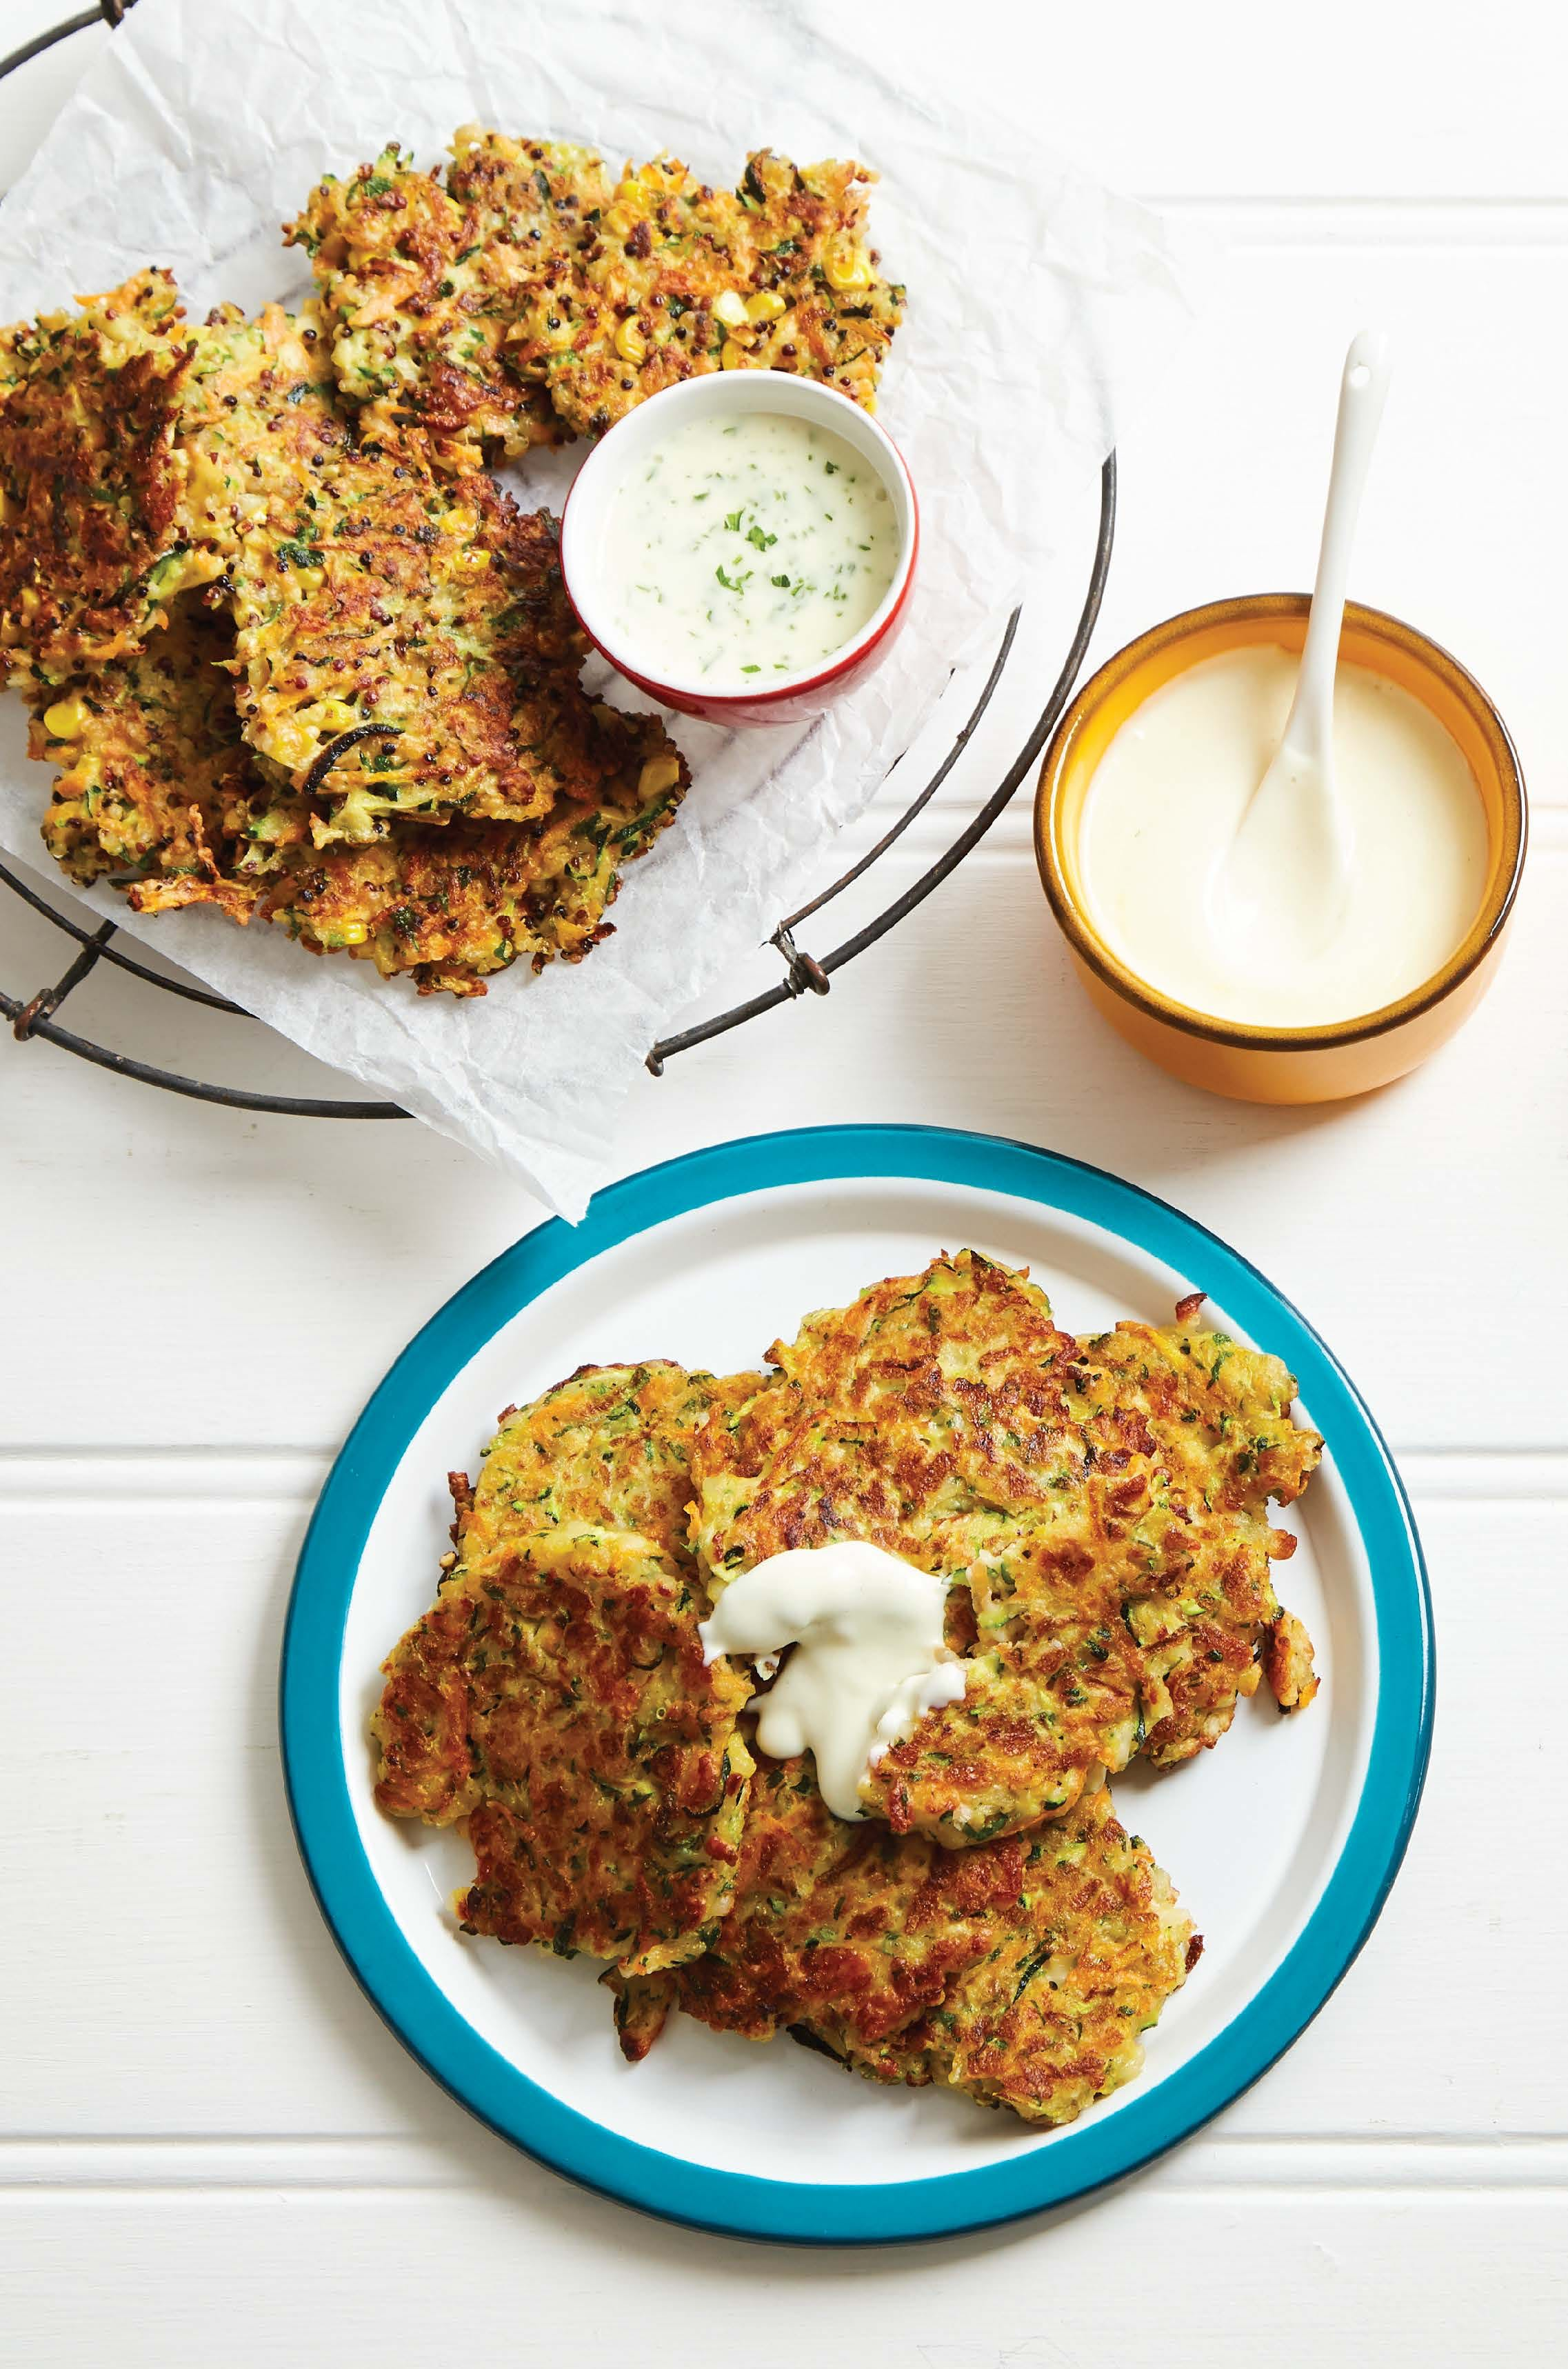 Vegetable and haloumi fritters